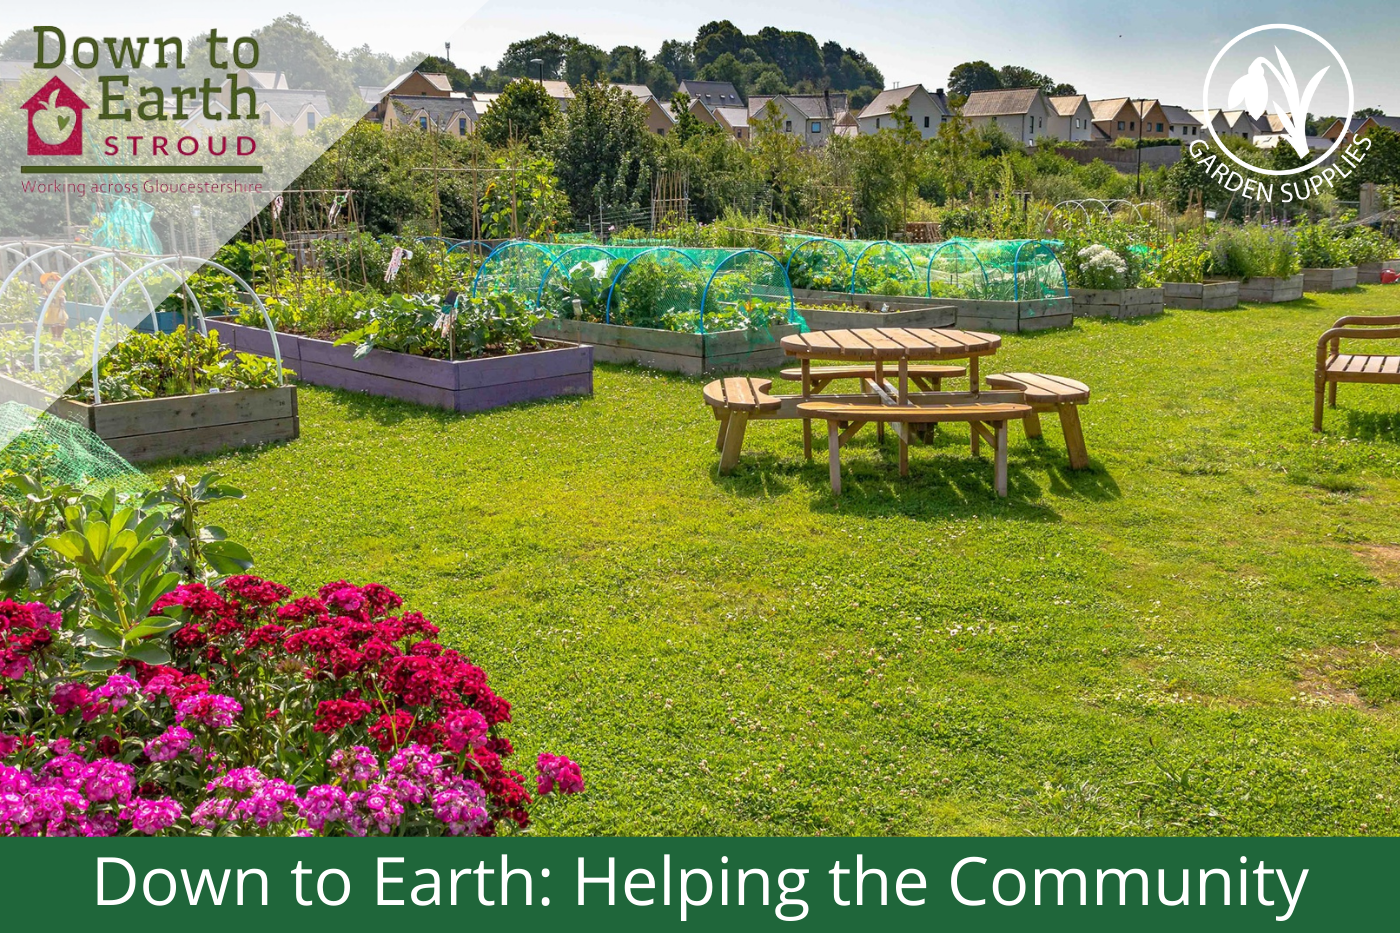 Down to Earth: Helping the Community